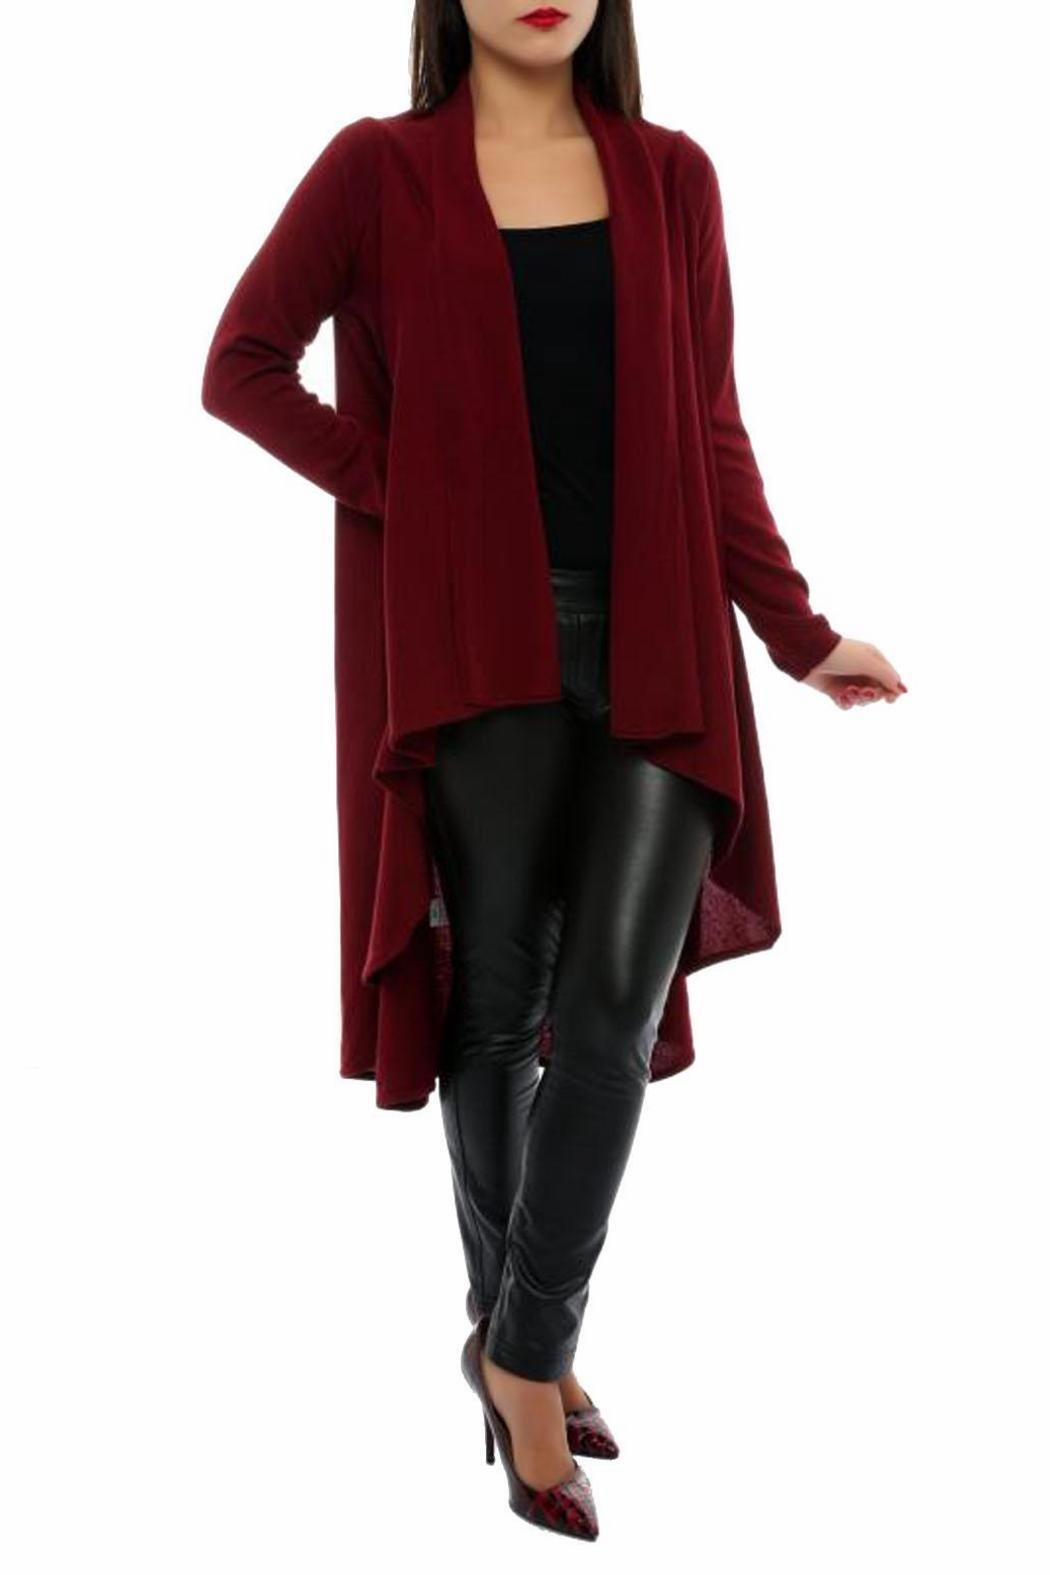 Marvy Fashion Draped Front Cardigan - Main Image